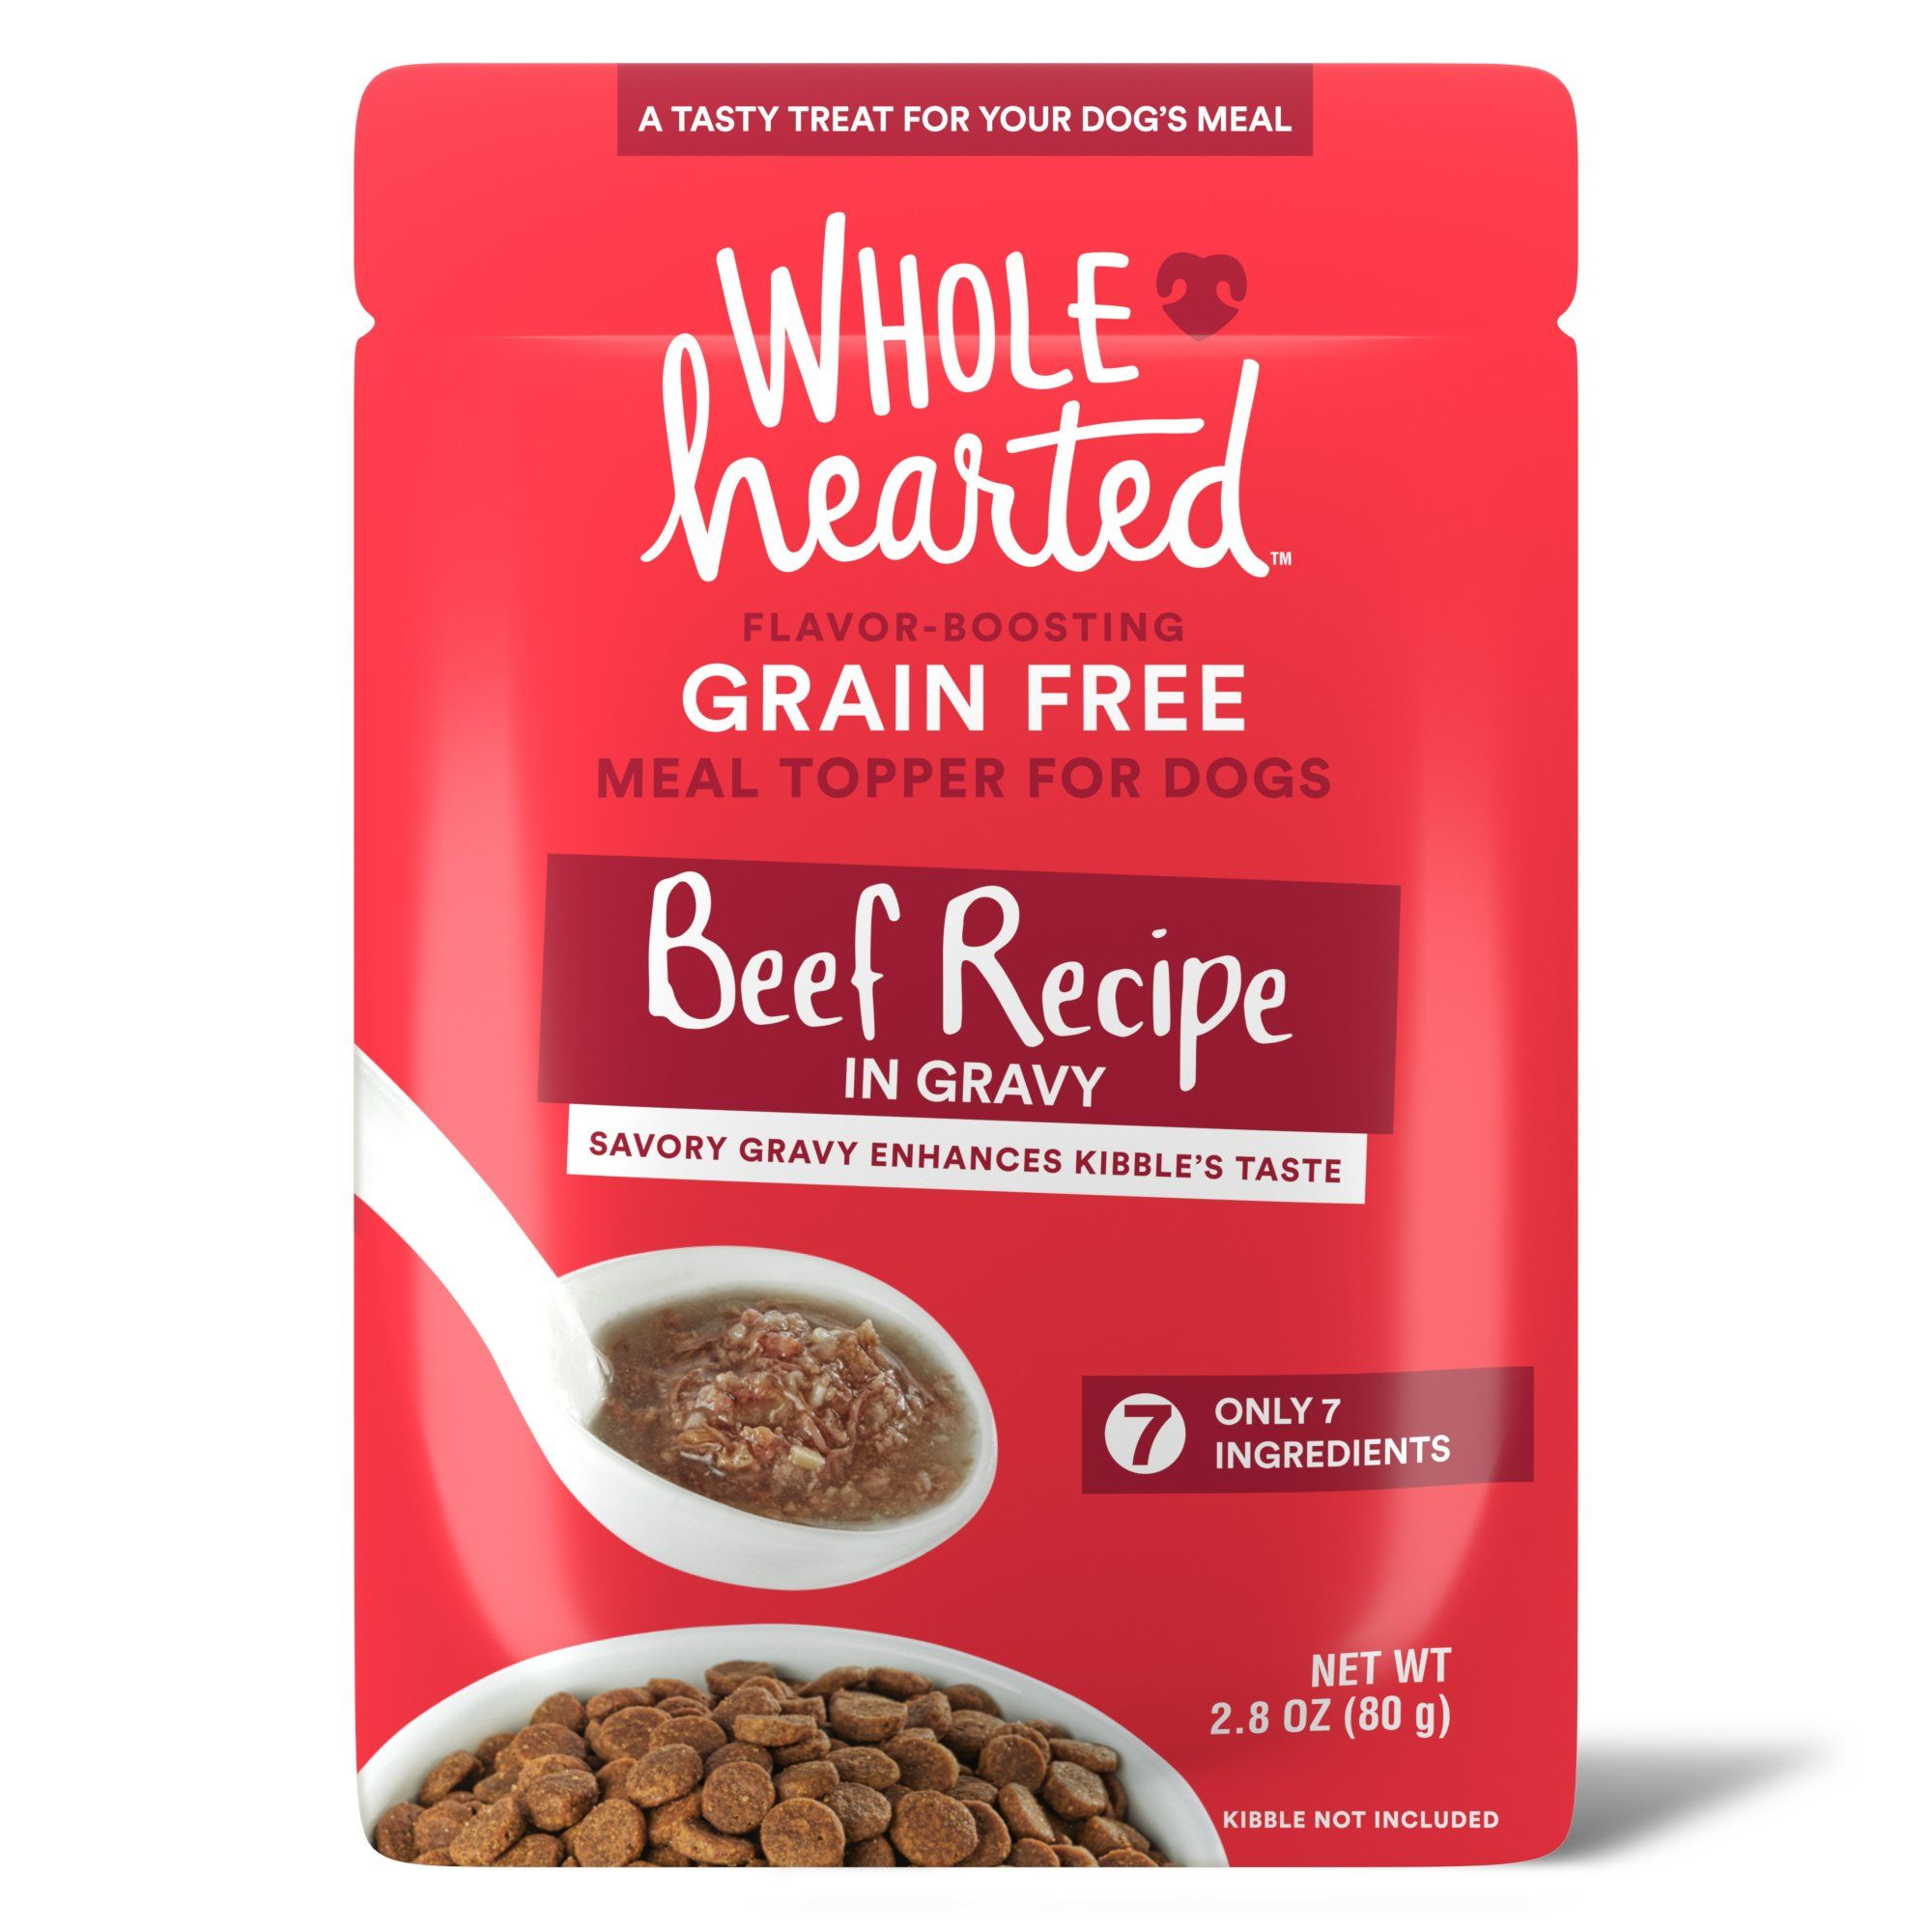 Wholehearted beef recipe in gravy dog meal topper 28 oz